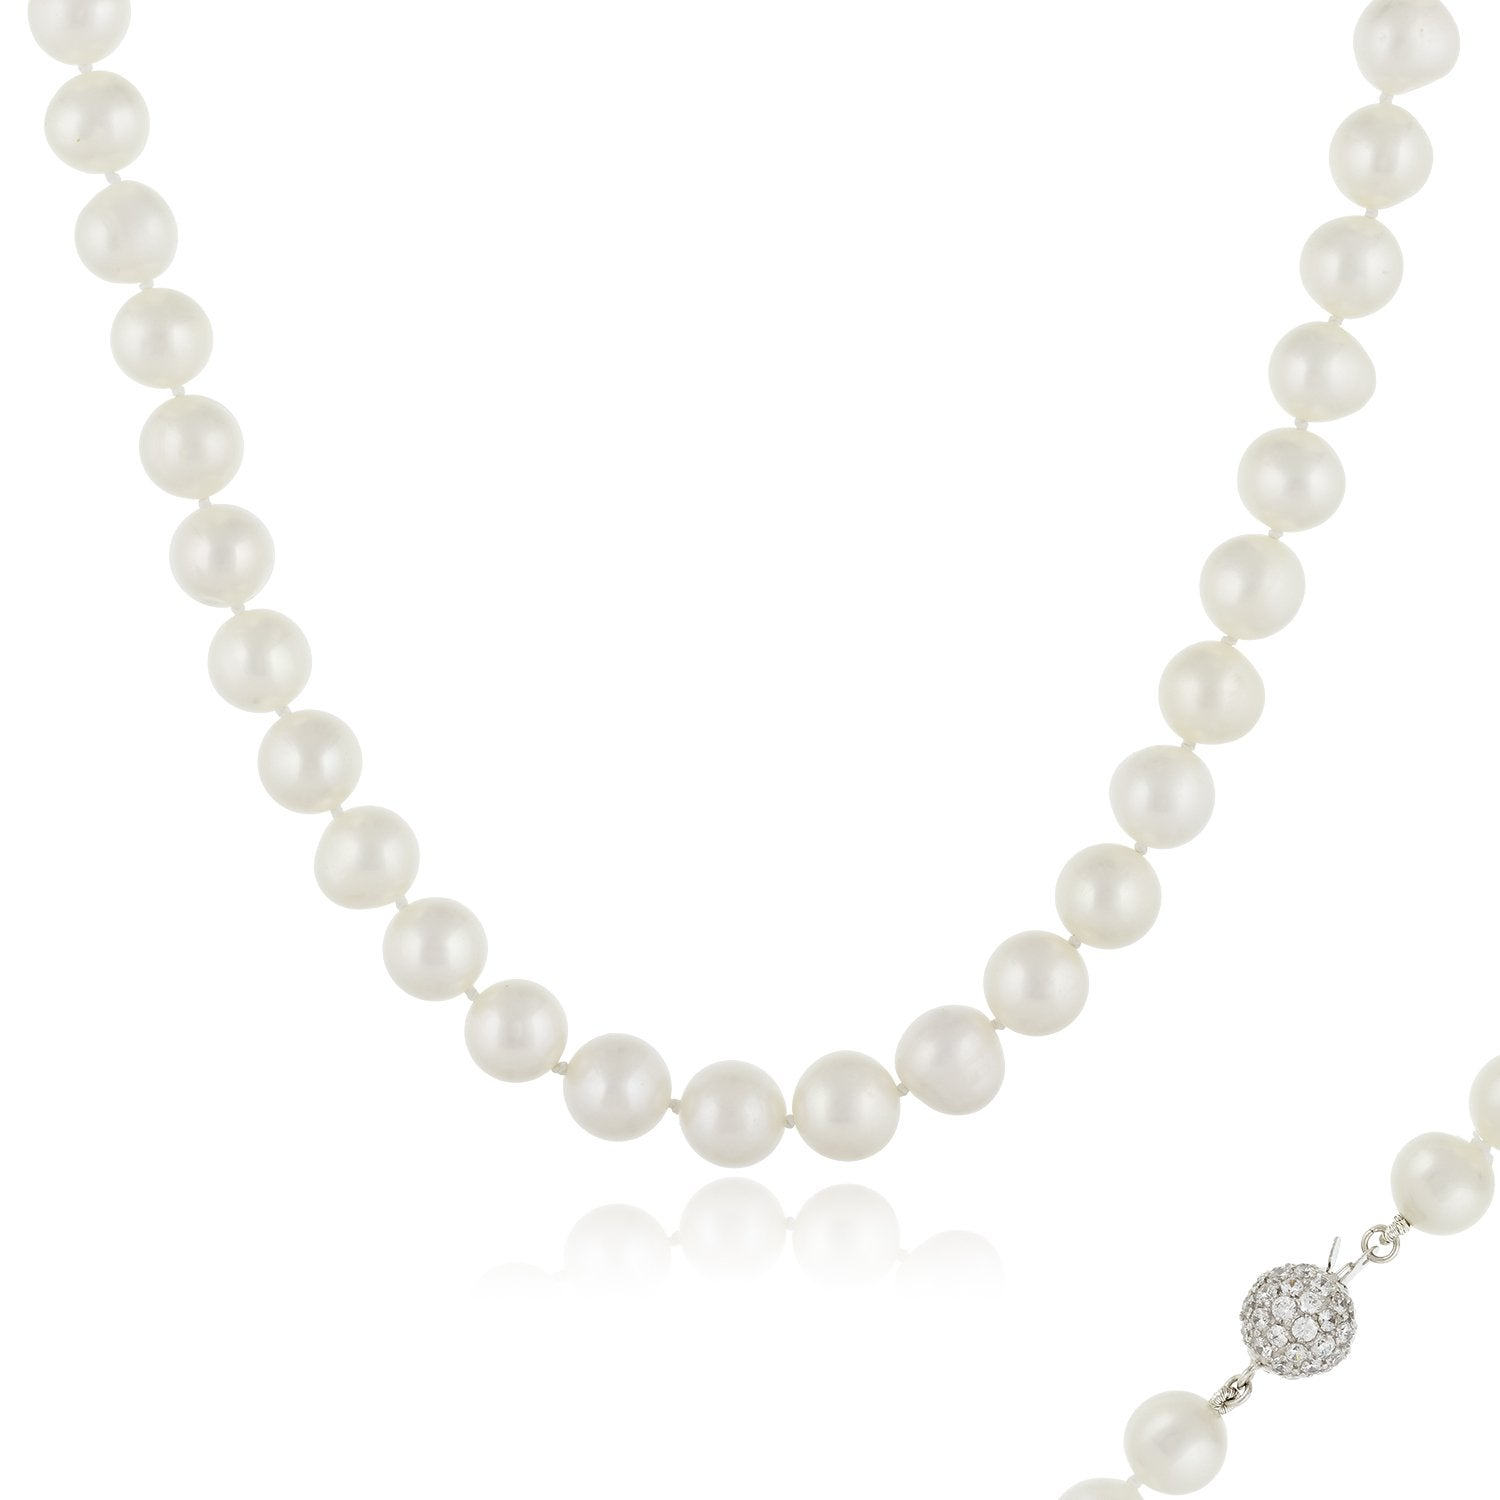 Delicate White Fancy Pearl Necklace